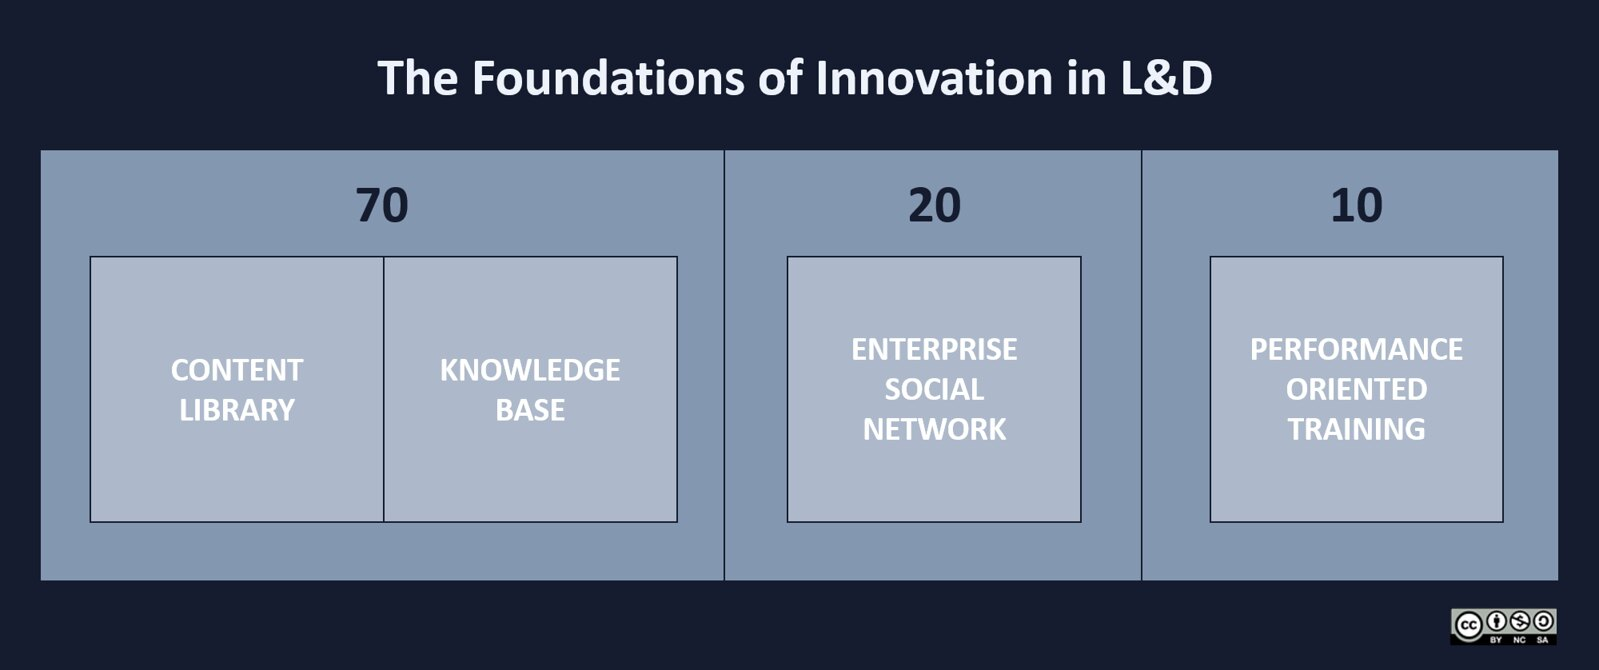 The Foundations of Innovation in L&D: content library, knowledge base, enterprise social network, and performance-oriented training